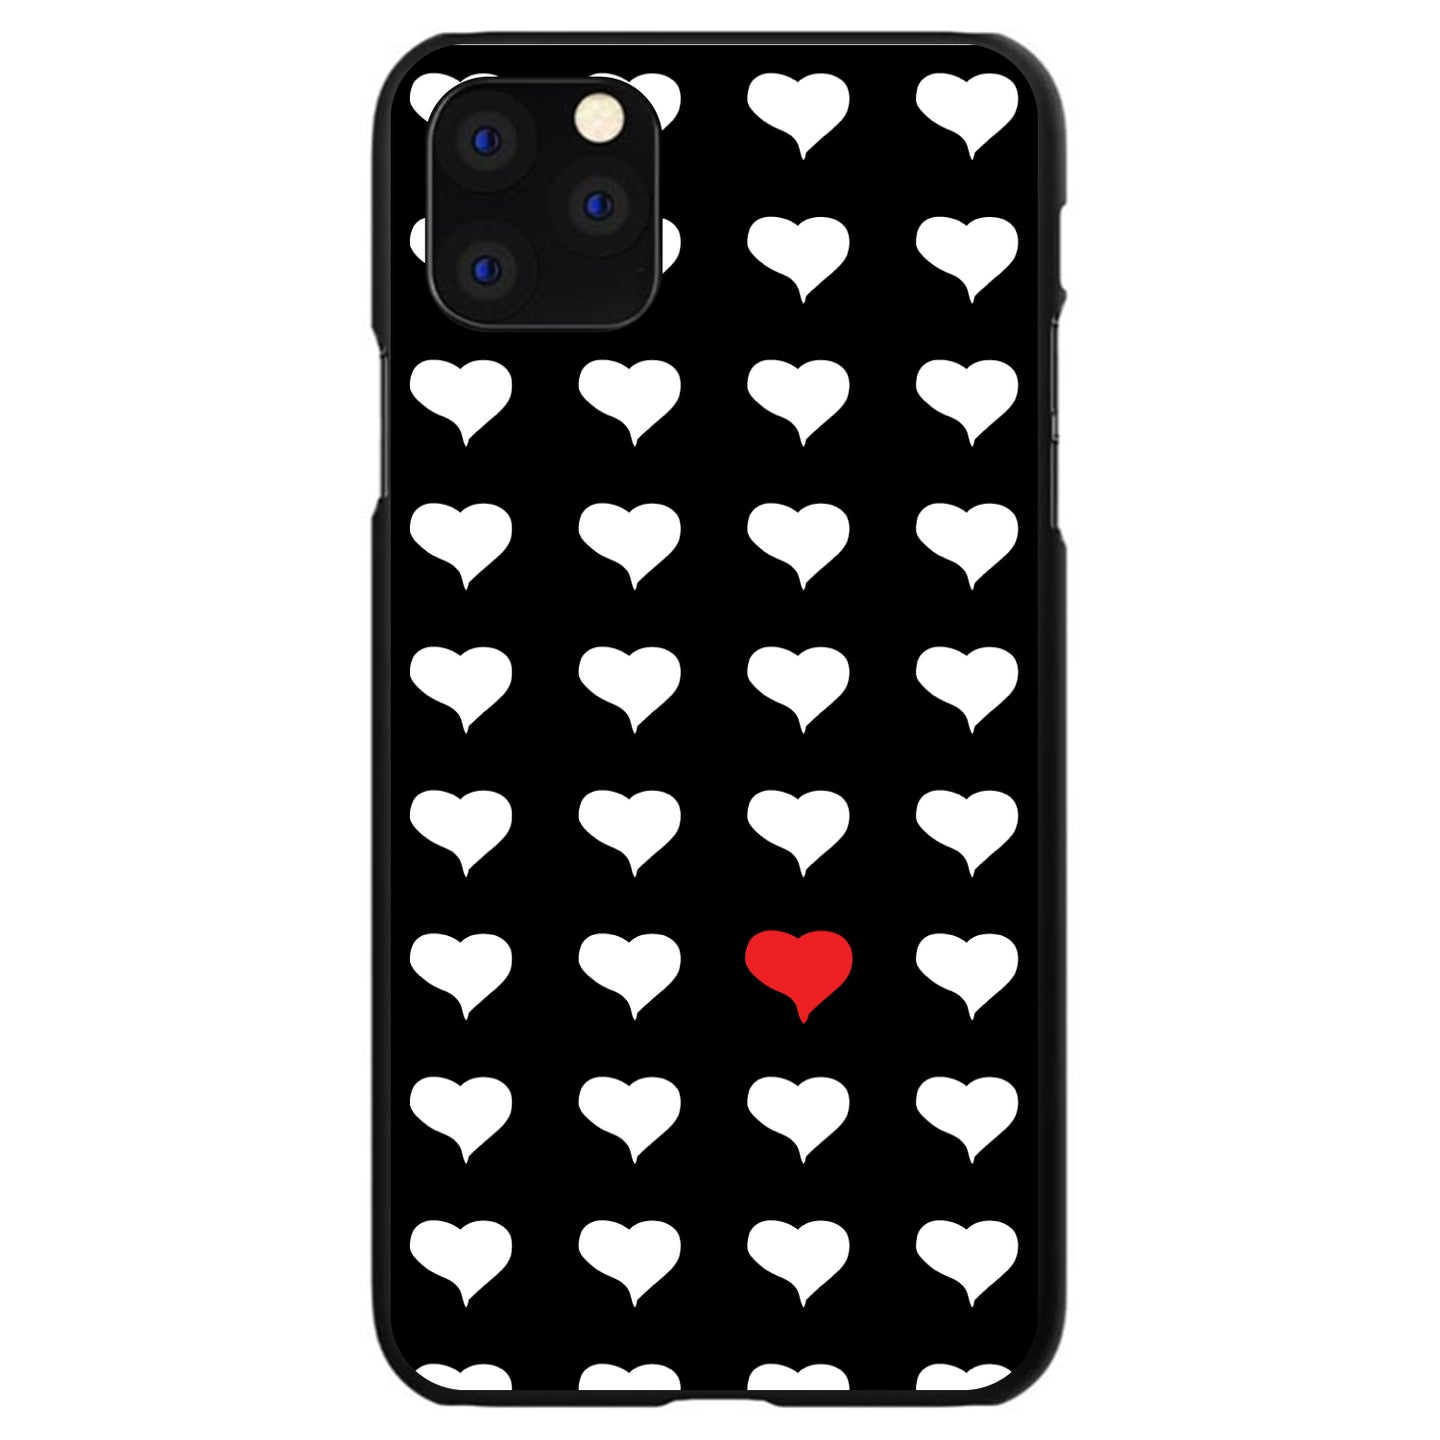 DistinctInk® Hard Plastic Snap-On Case for Apple iPhone - Red White Black Repeating Hearts